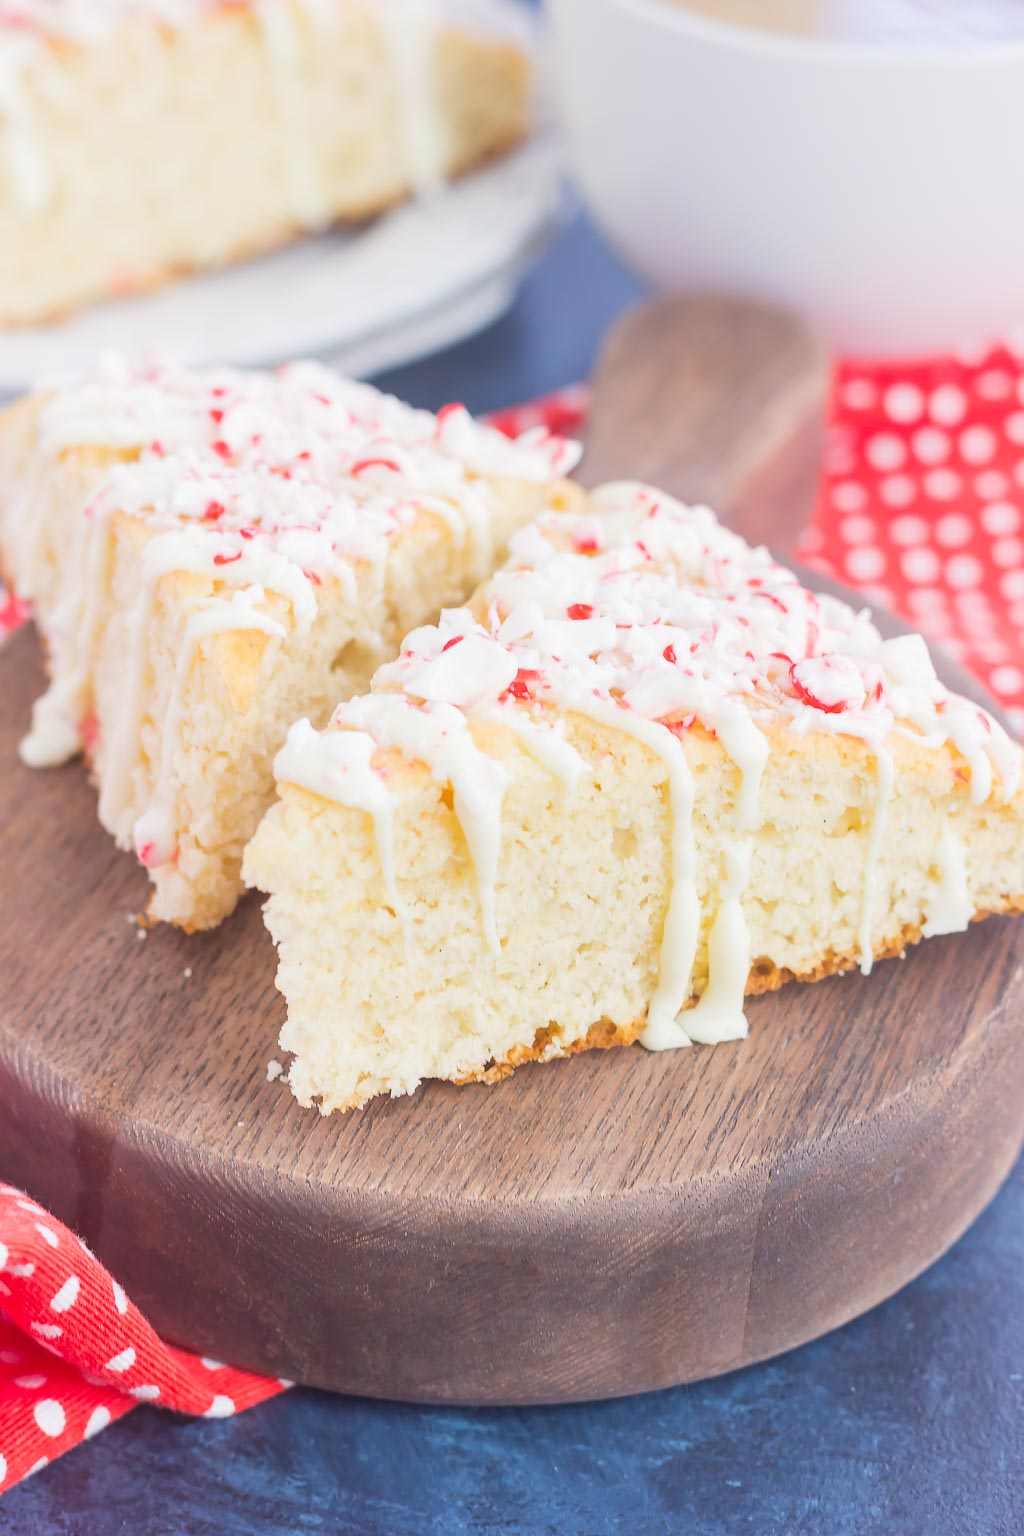 These White Chocolate Peppermint Scones are light, fluffy and bursting with flavor. Filled with hints of peppermint and topped with a white chocolate and peppermint glaze, these soft scones make the best holiday breakfast or dessert!